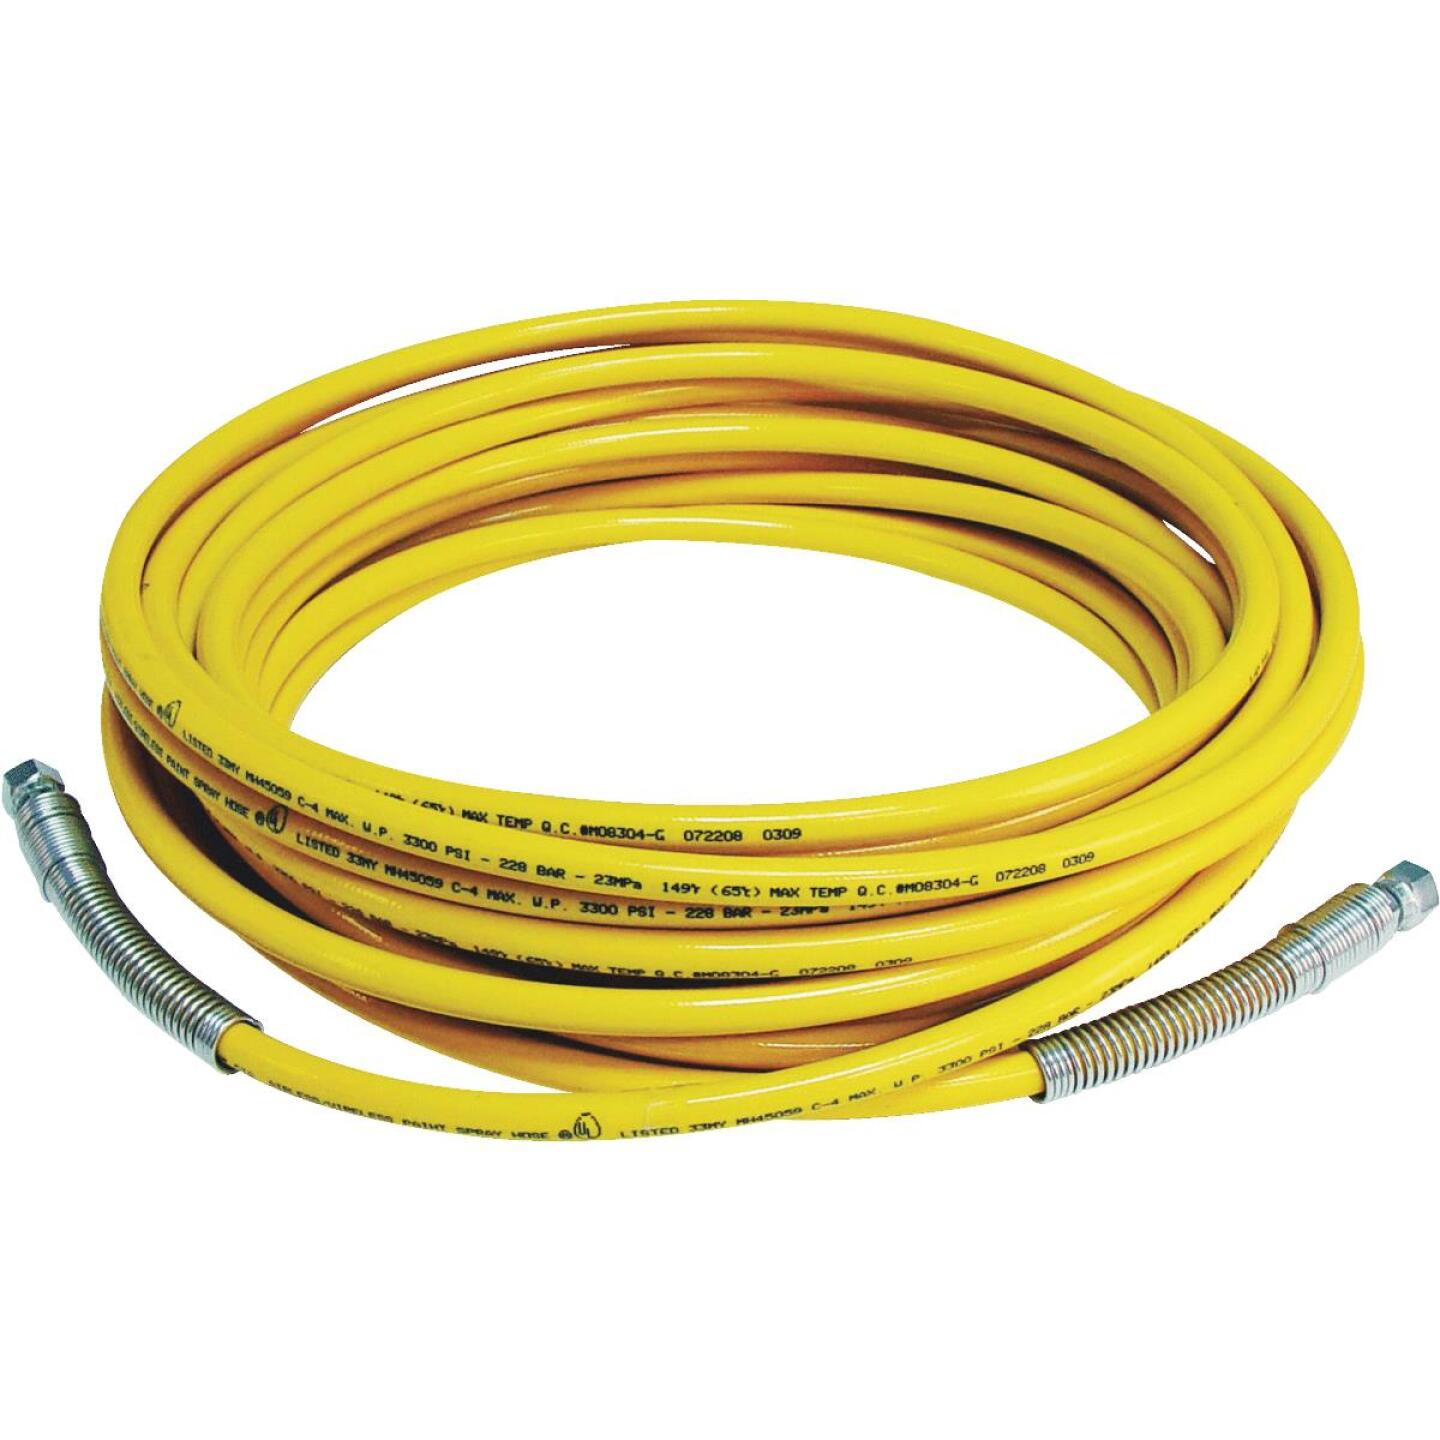 Wagner 25 Ft. 1/4 In. ID 3300 psi High Press Hose Image 1